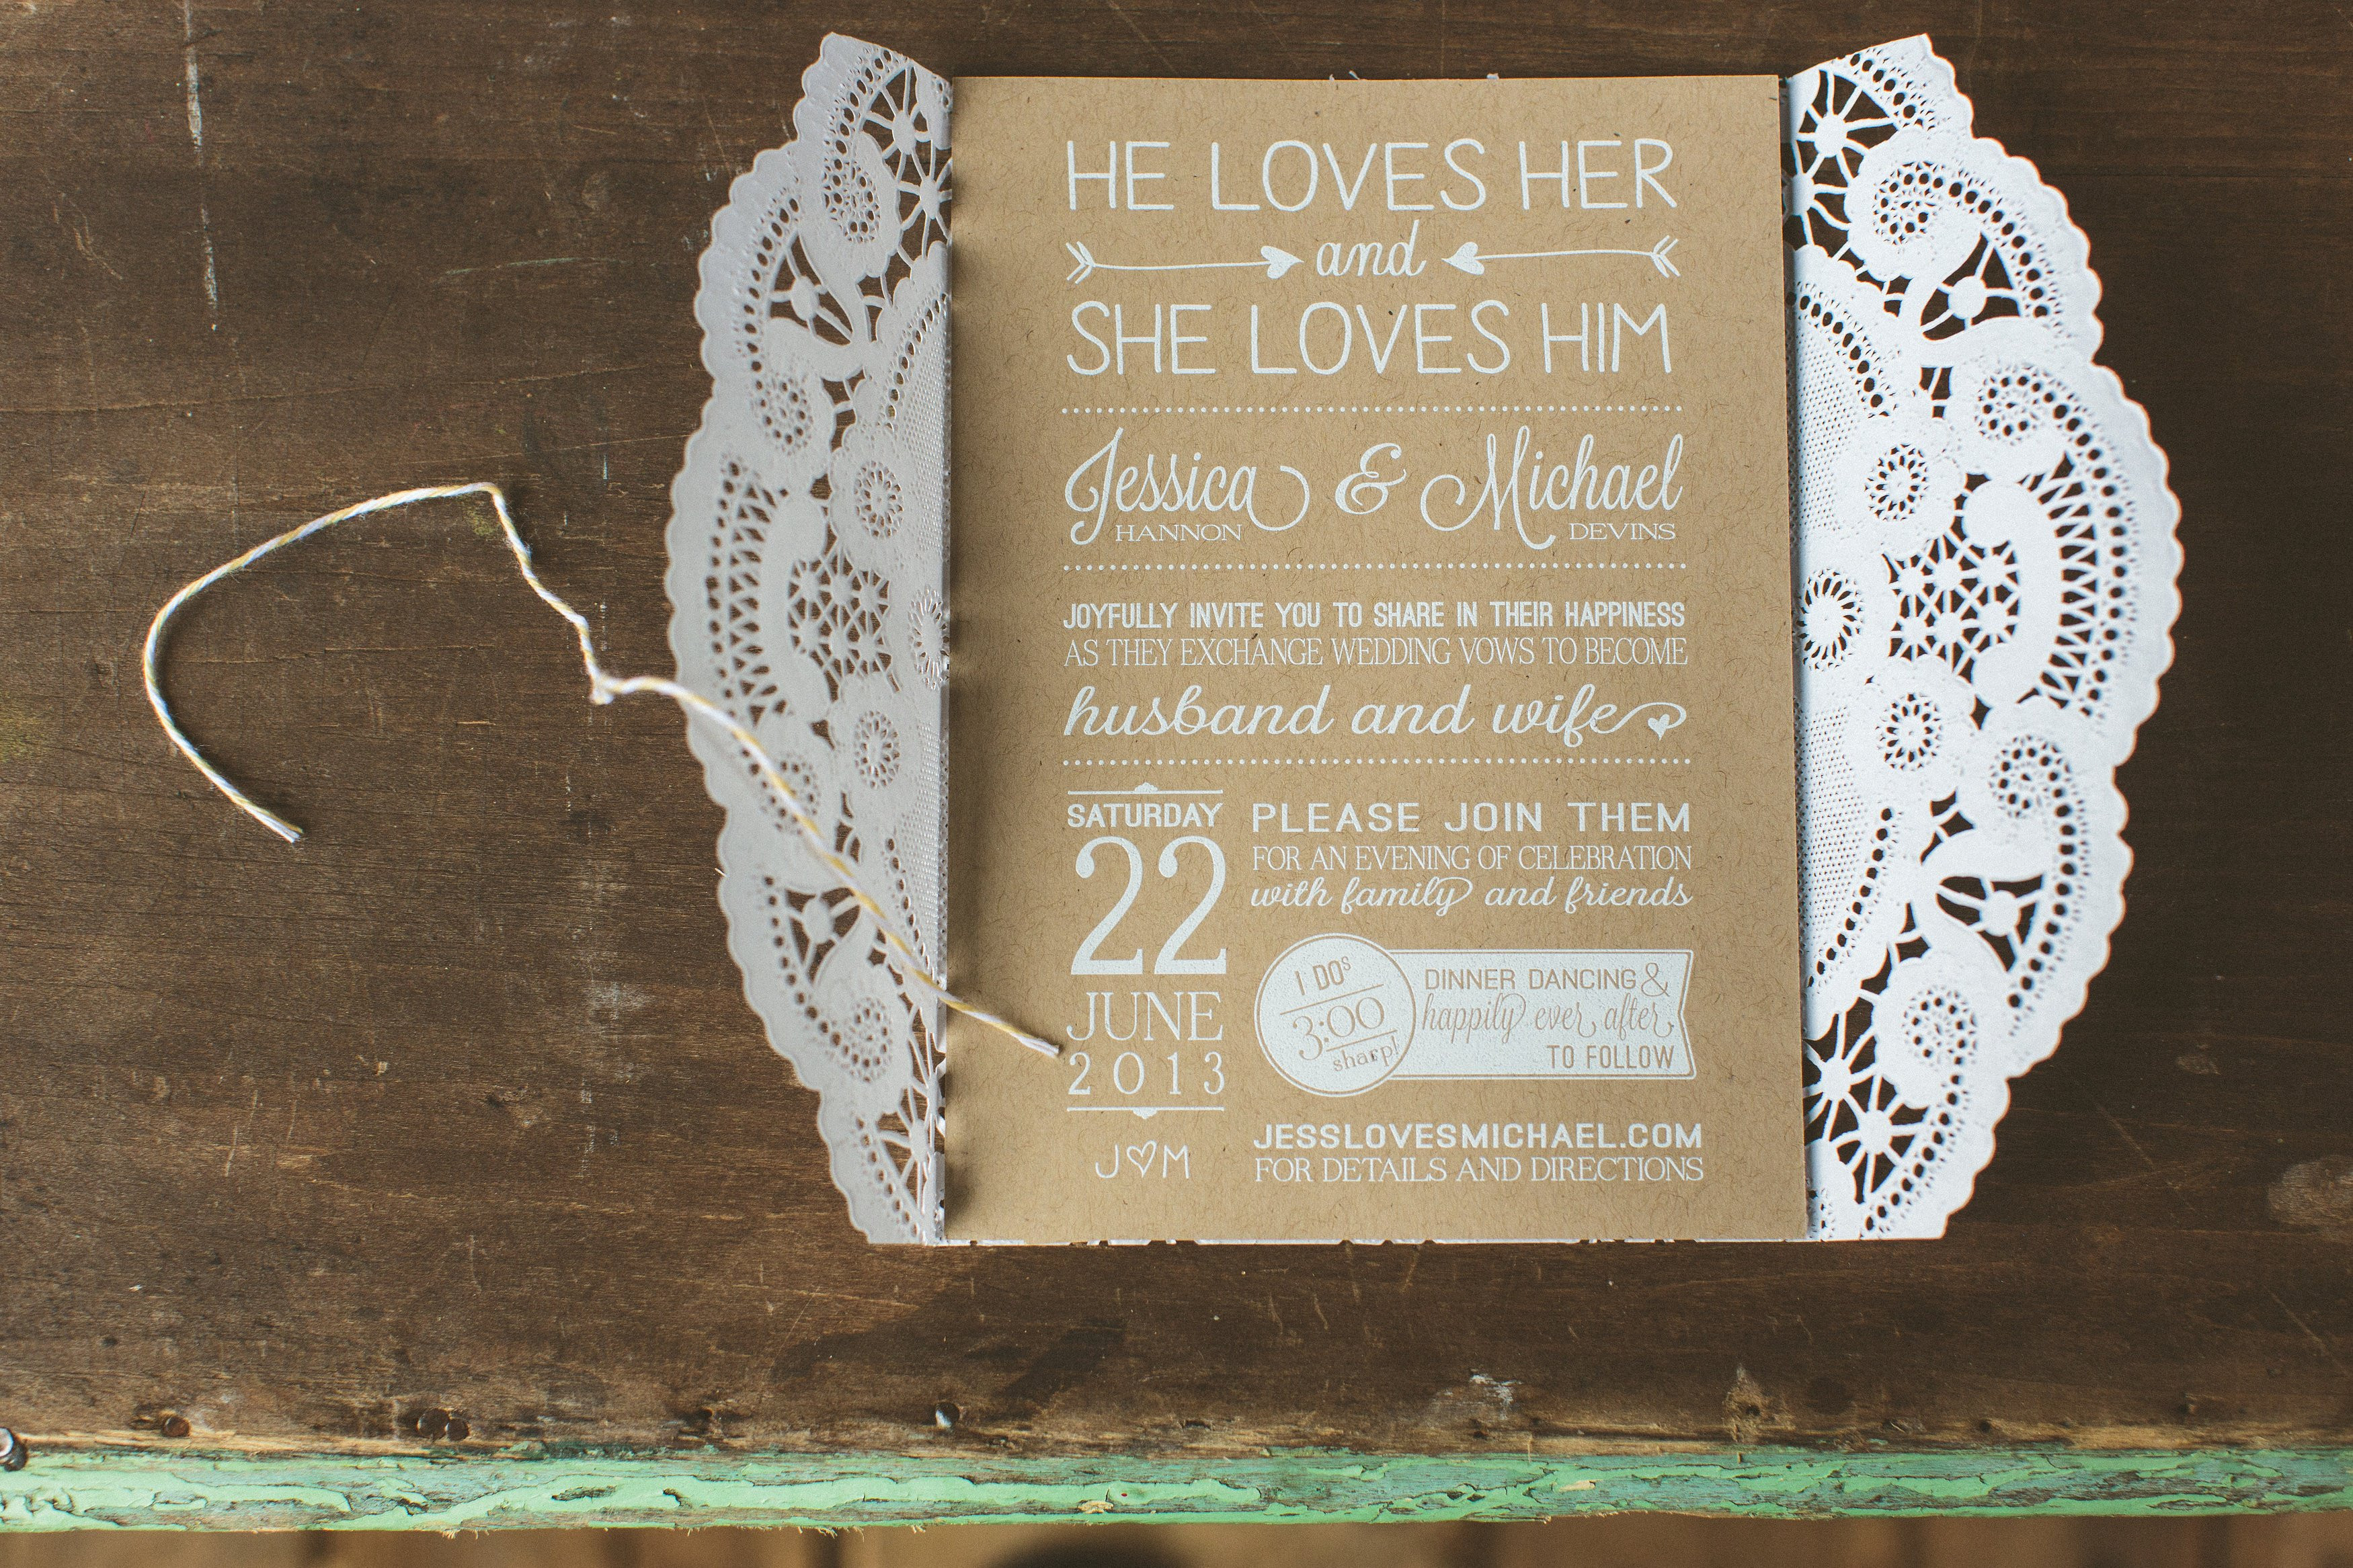 Best ideas about DIY Wedding Invitation . Save or Pin Wedding Invitation Templates diy rustic wedding Now.